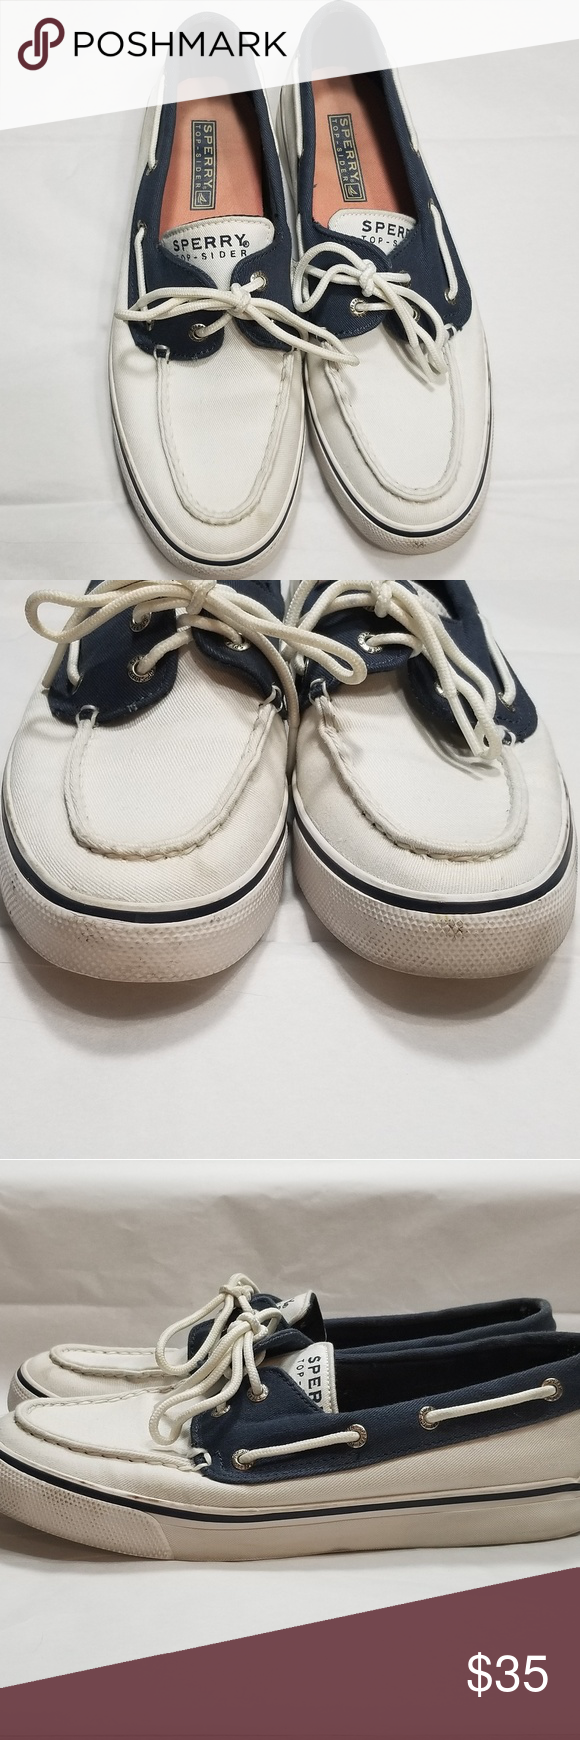 white canvas sperry boat shoes